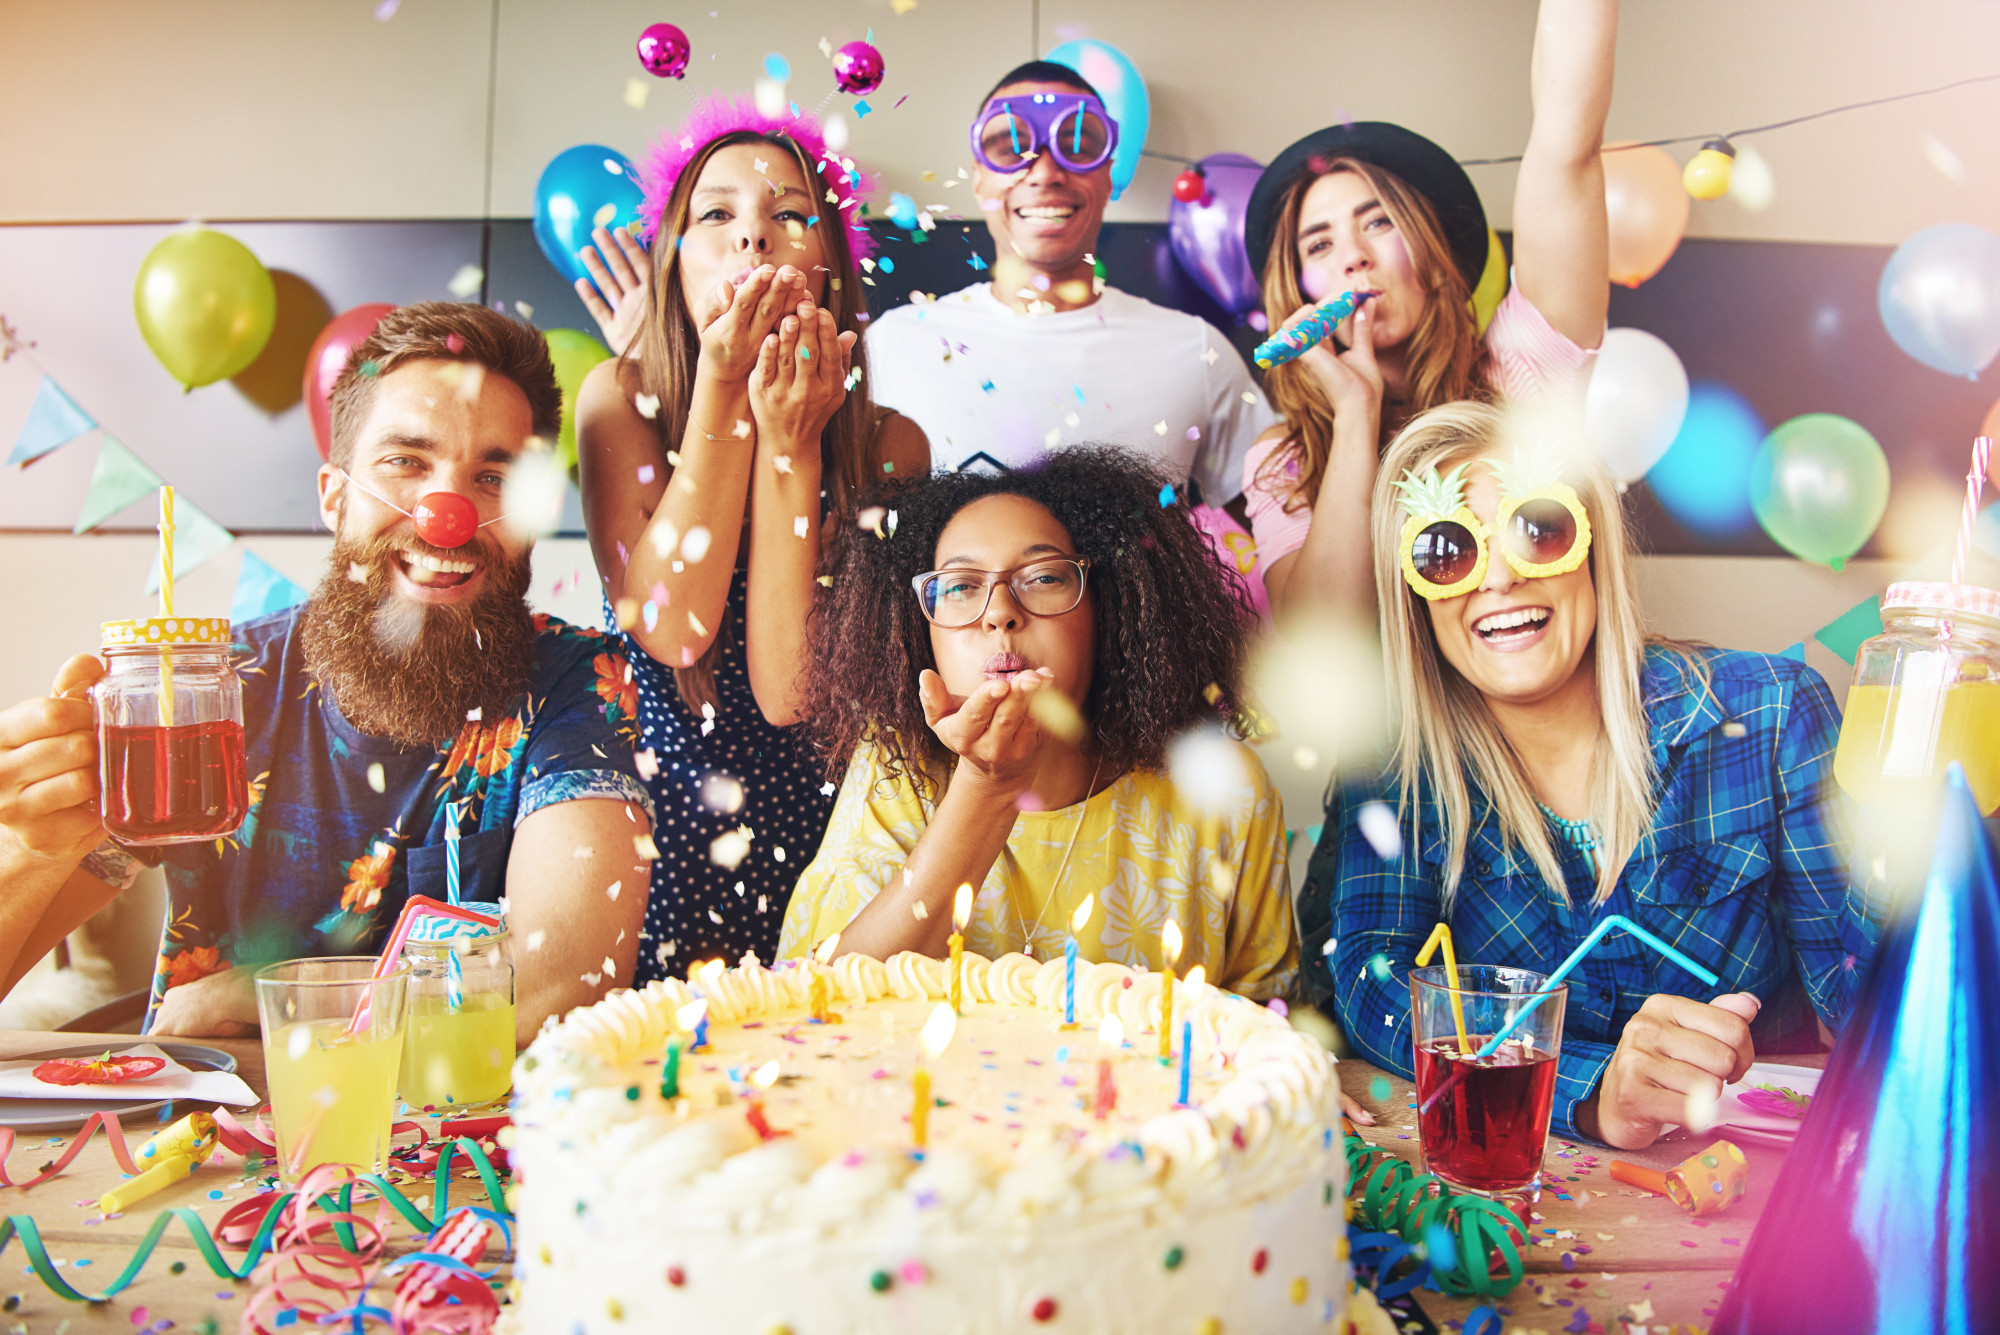 8 Extremely Fun Ways to Celebrate Your Birthday